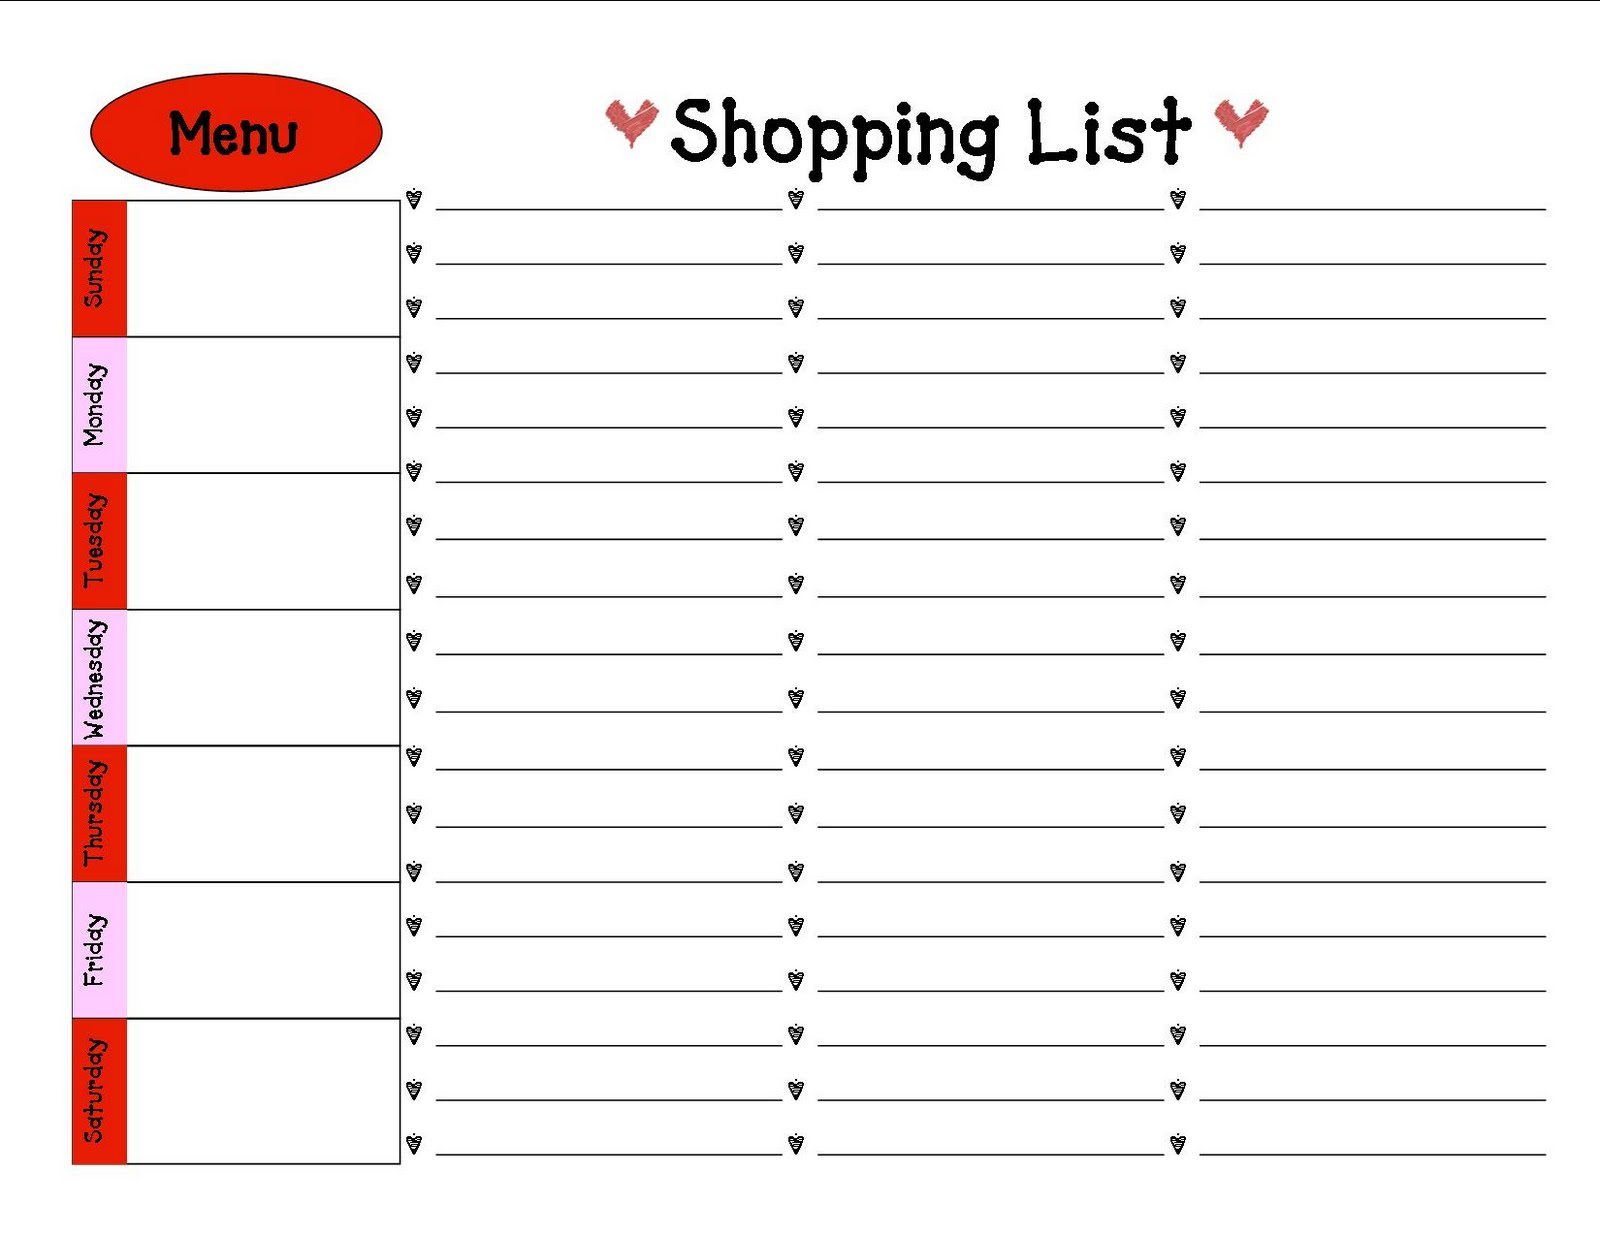 making the shopping list with ads may 2 2017 aldimarc